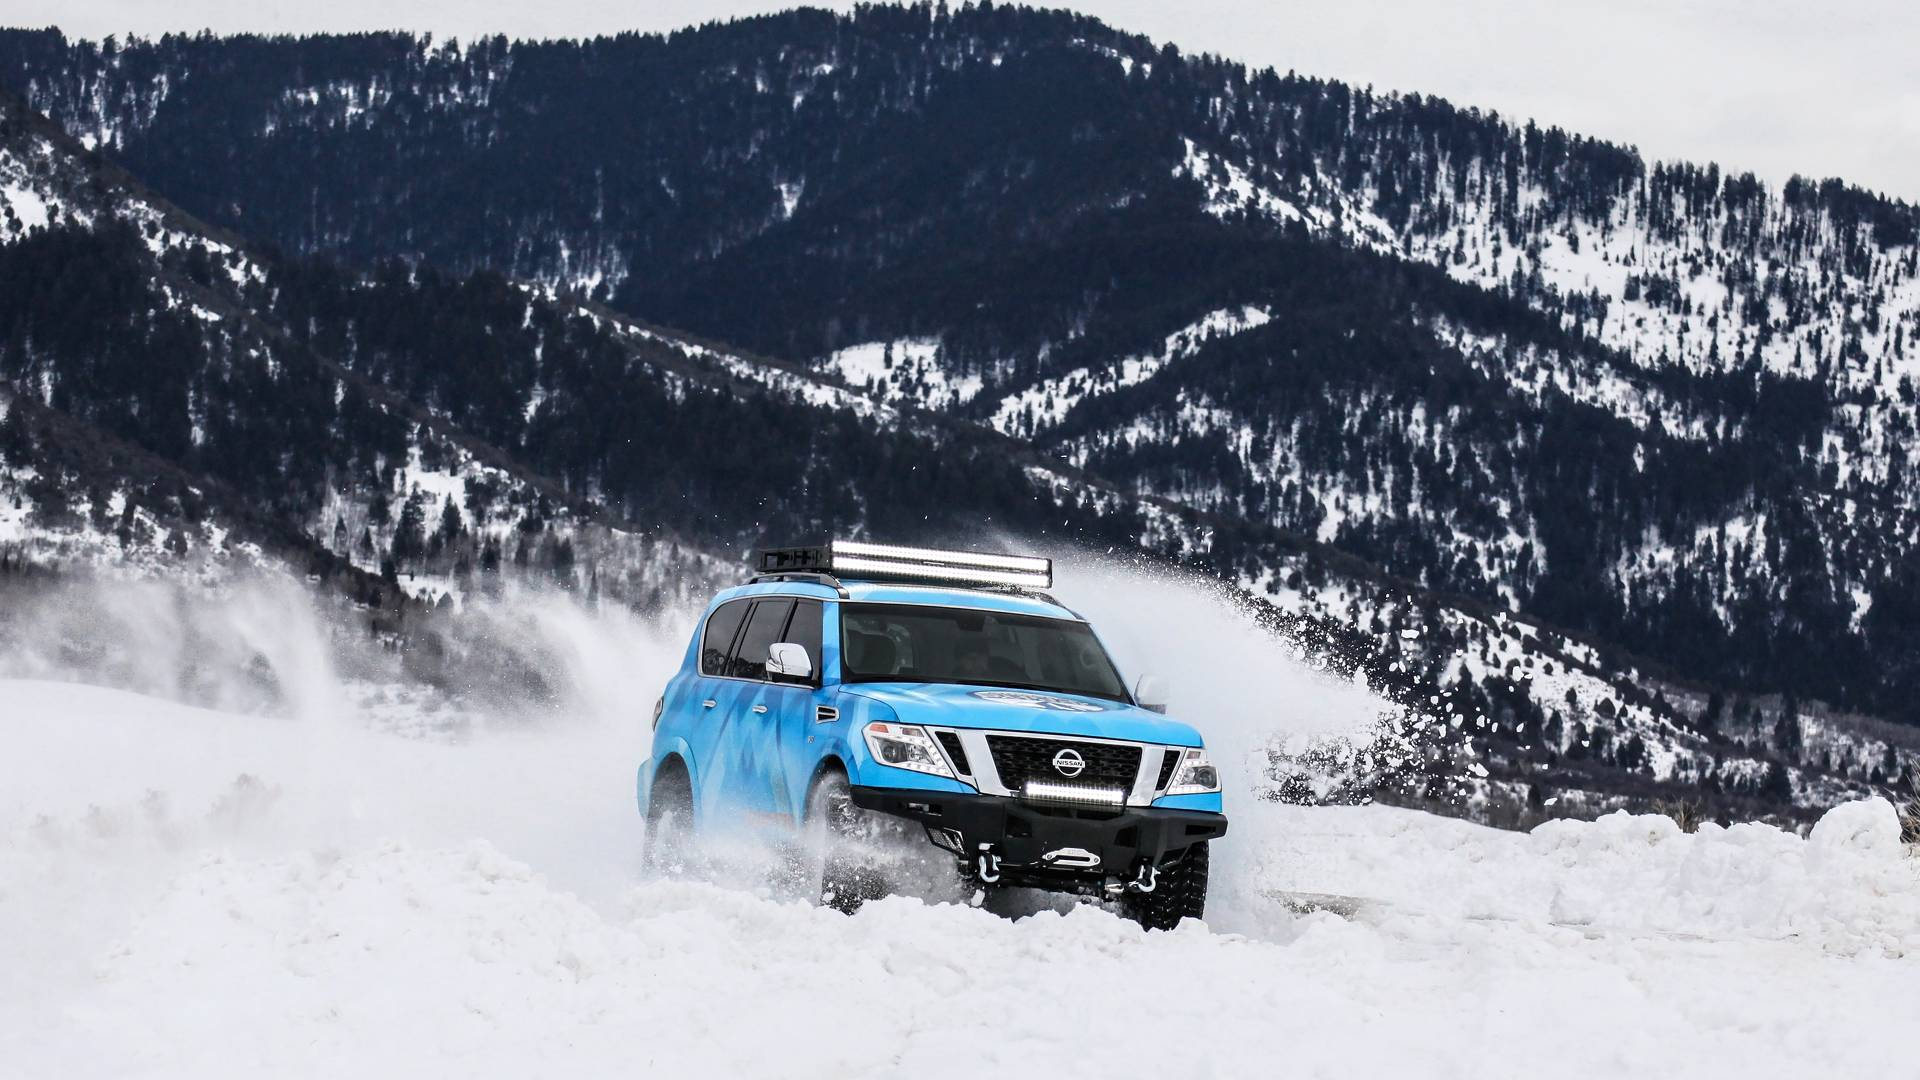 Nissan and Nissan Armada Snow Patrol (23)